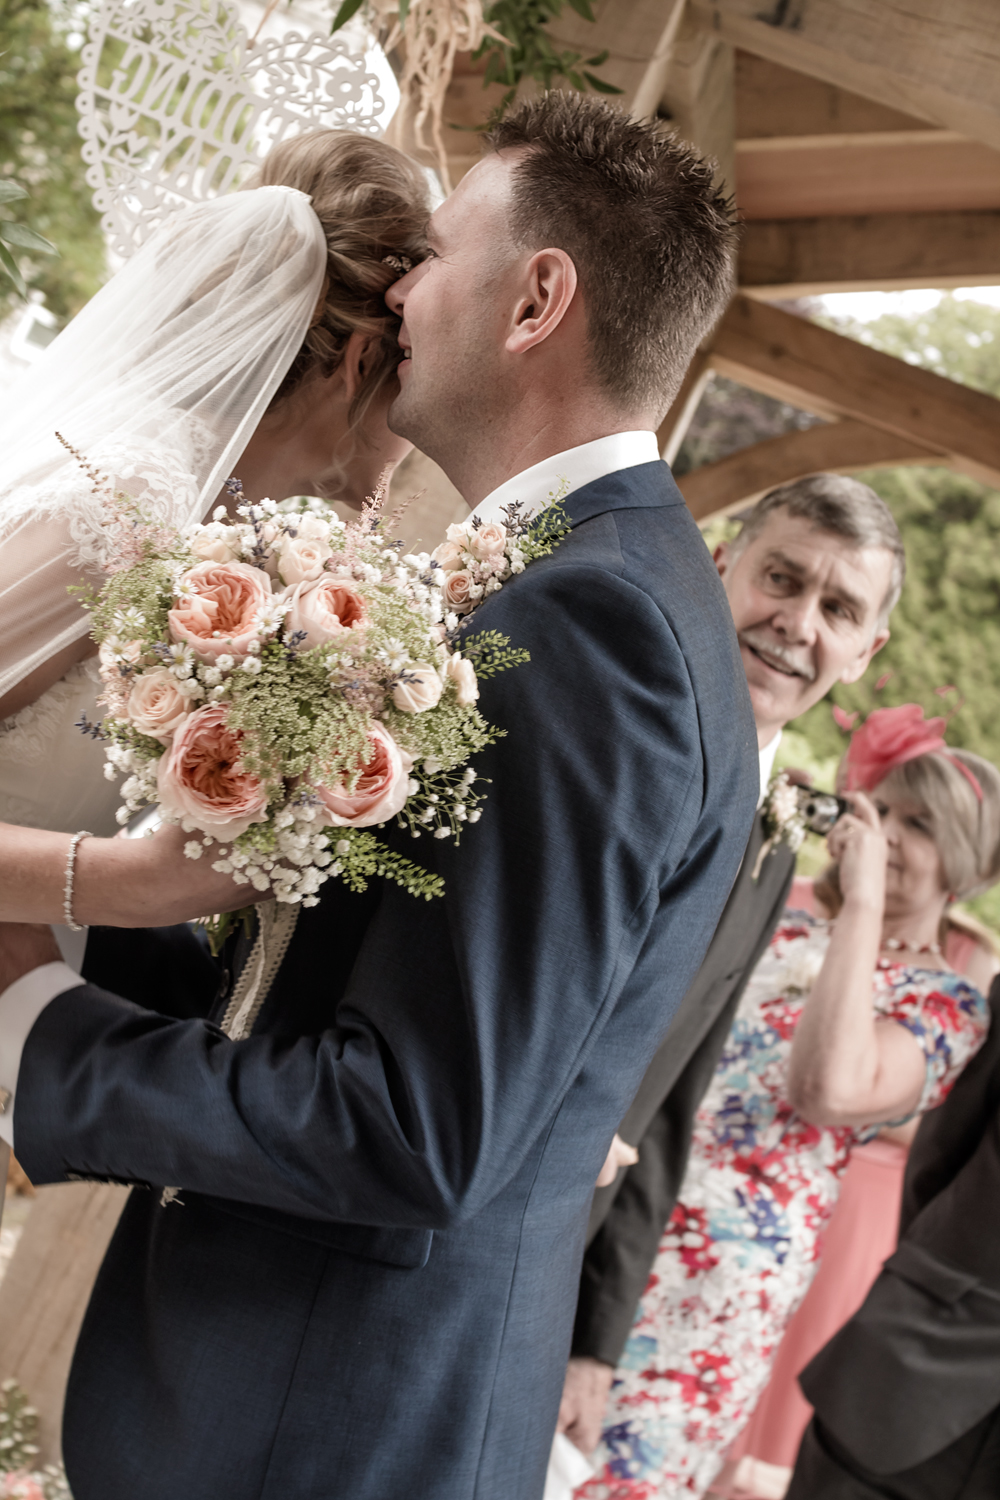 A Rustic Country Wedding at Knightor Winery - Image 14